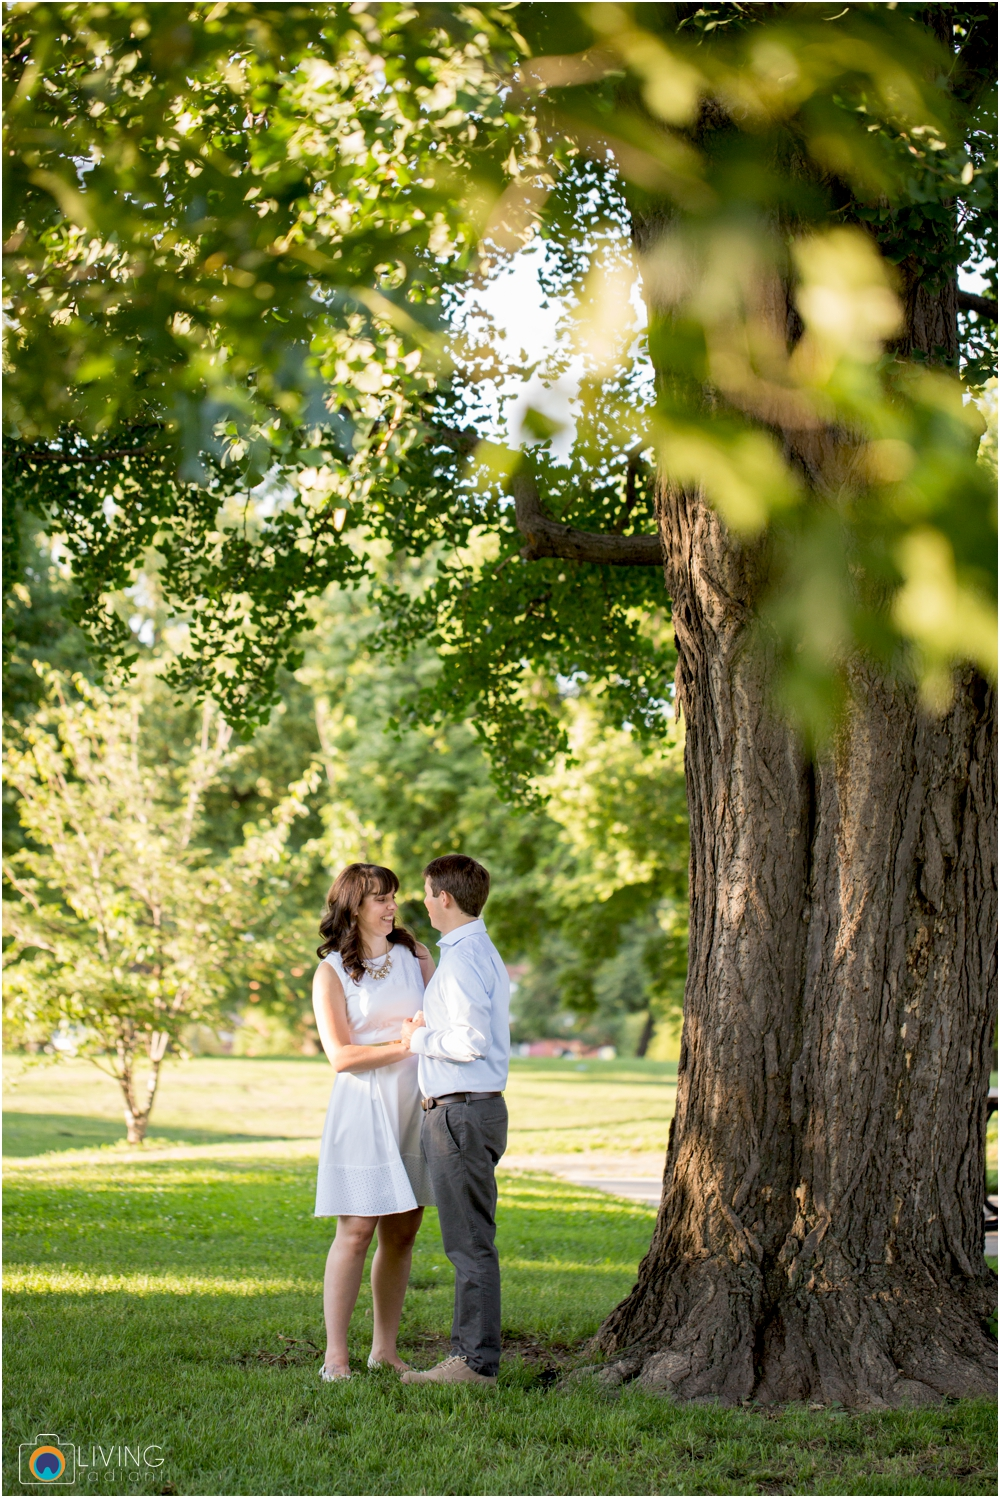 eva-dave-engaged-patterson-park-baltimore-downtown-living-radiant-photography-photos_0018.jpg